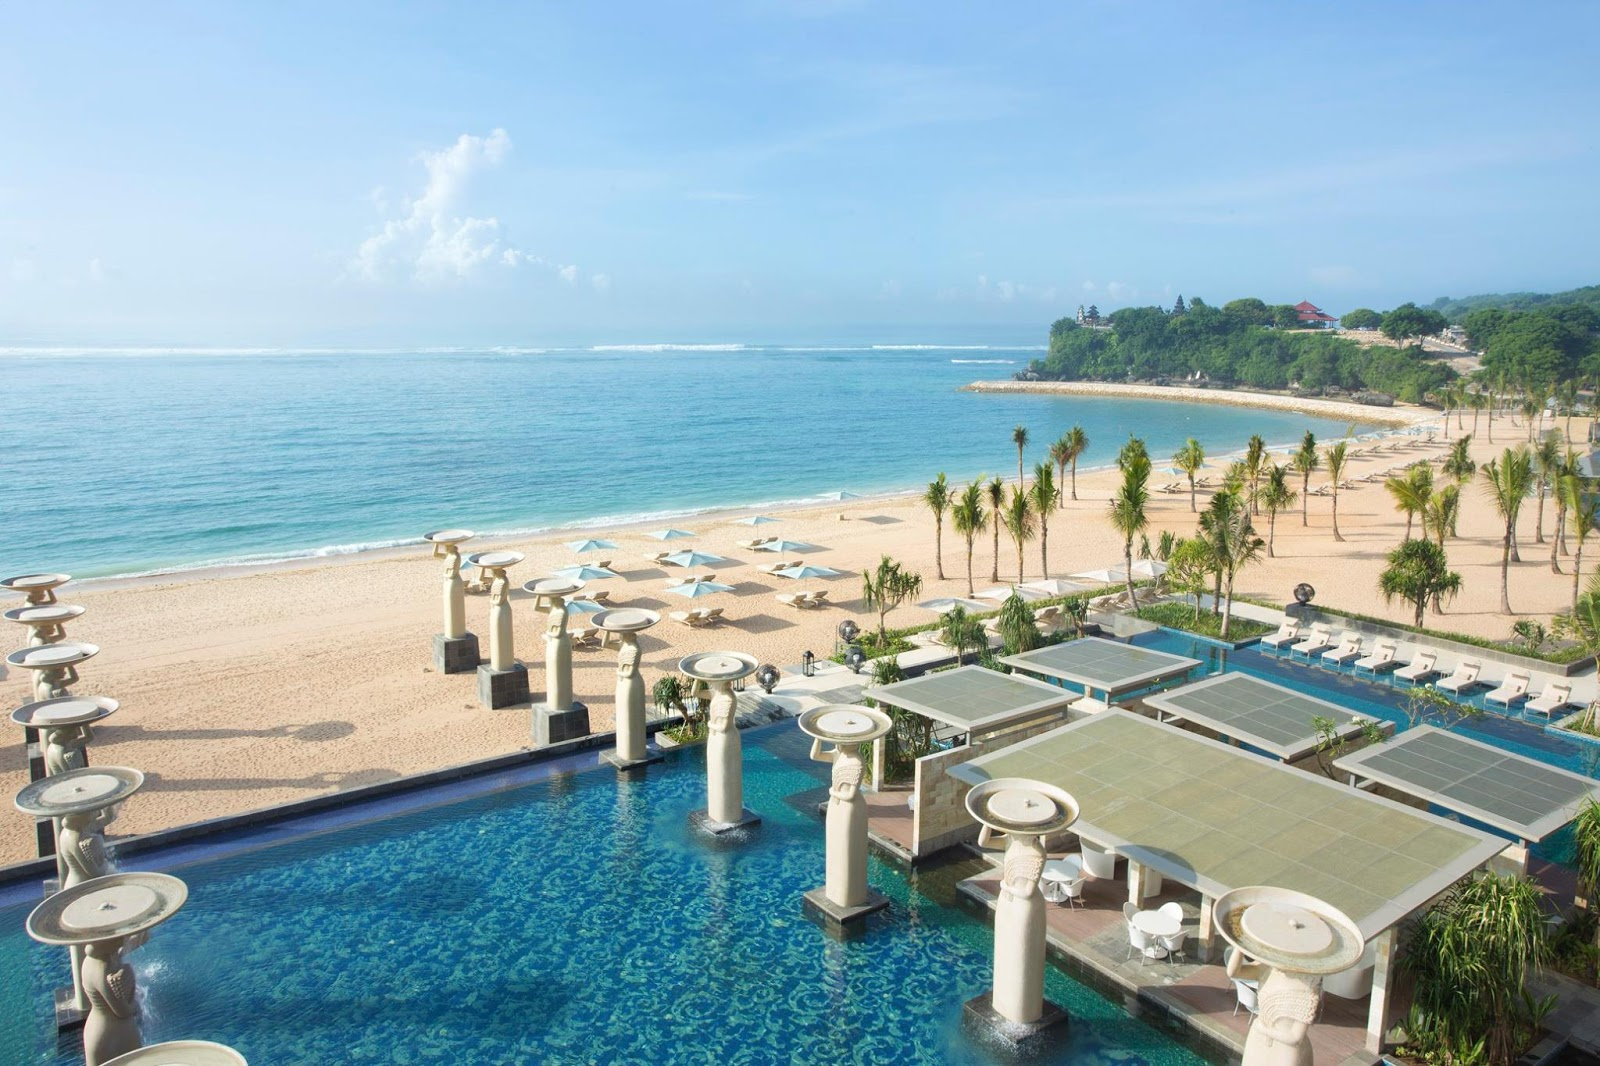 a resort's swimming pool at the beach